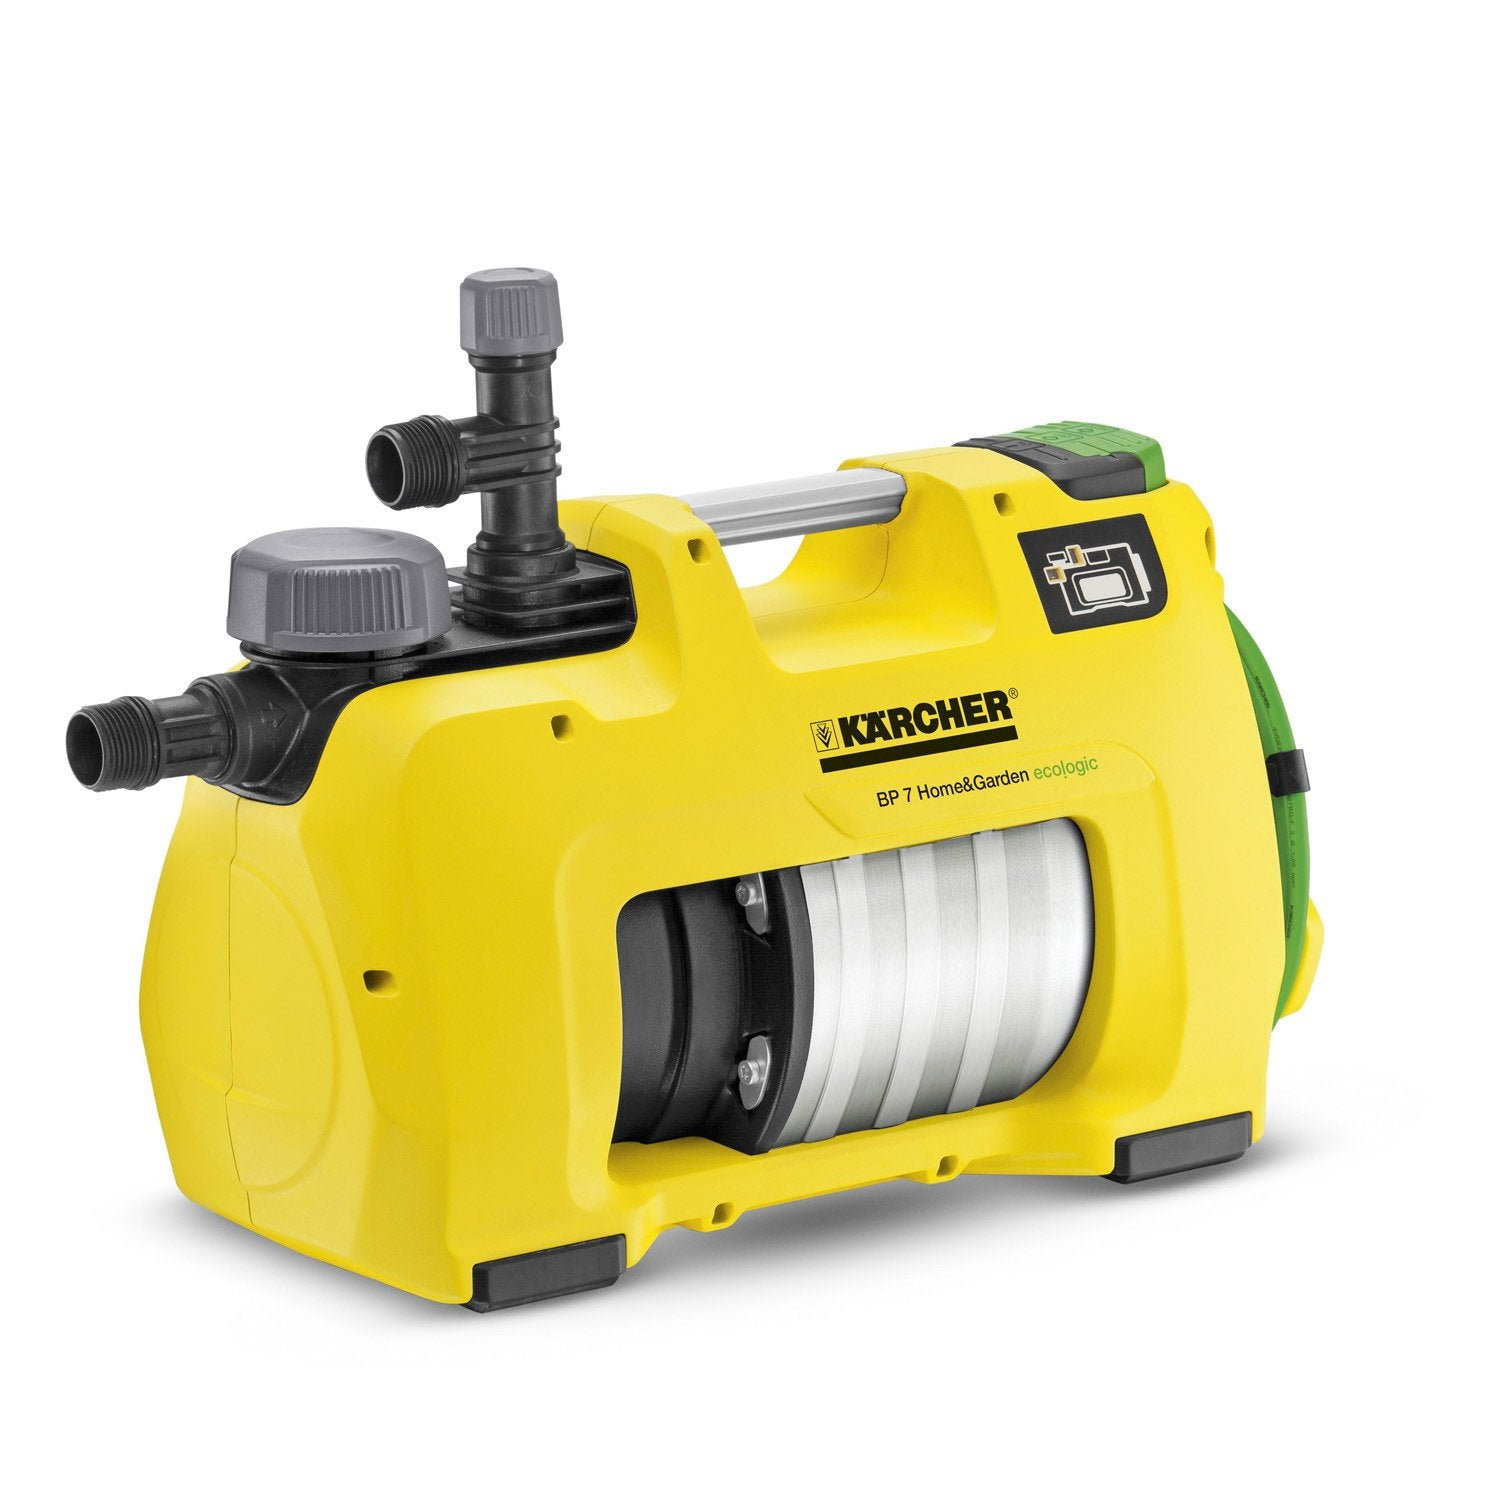 Pompe arrosage automatique karcher bp7 home and garden - Leroy merlin karcher ...